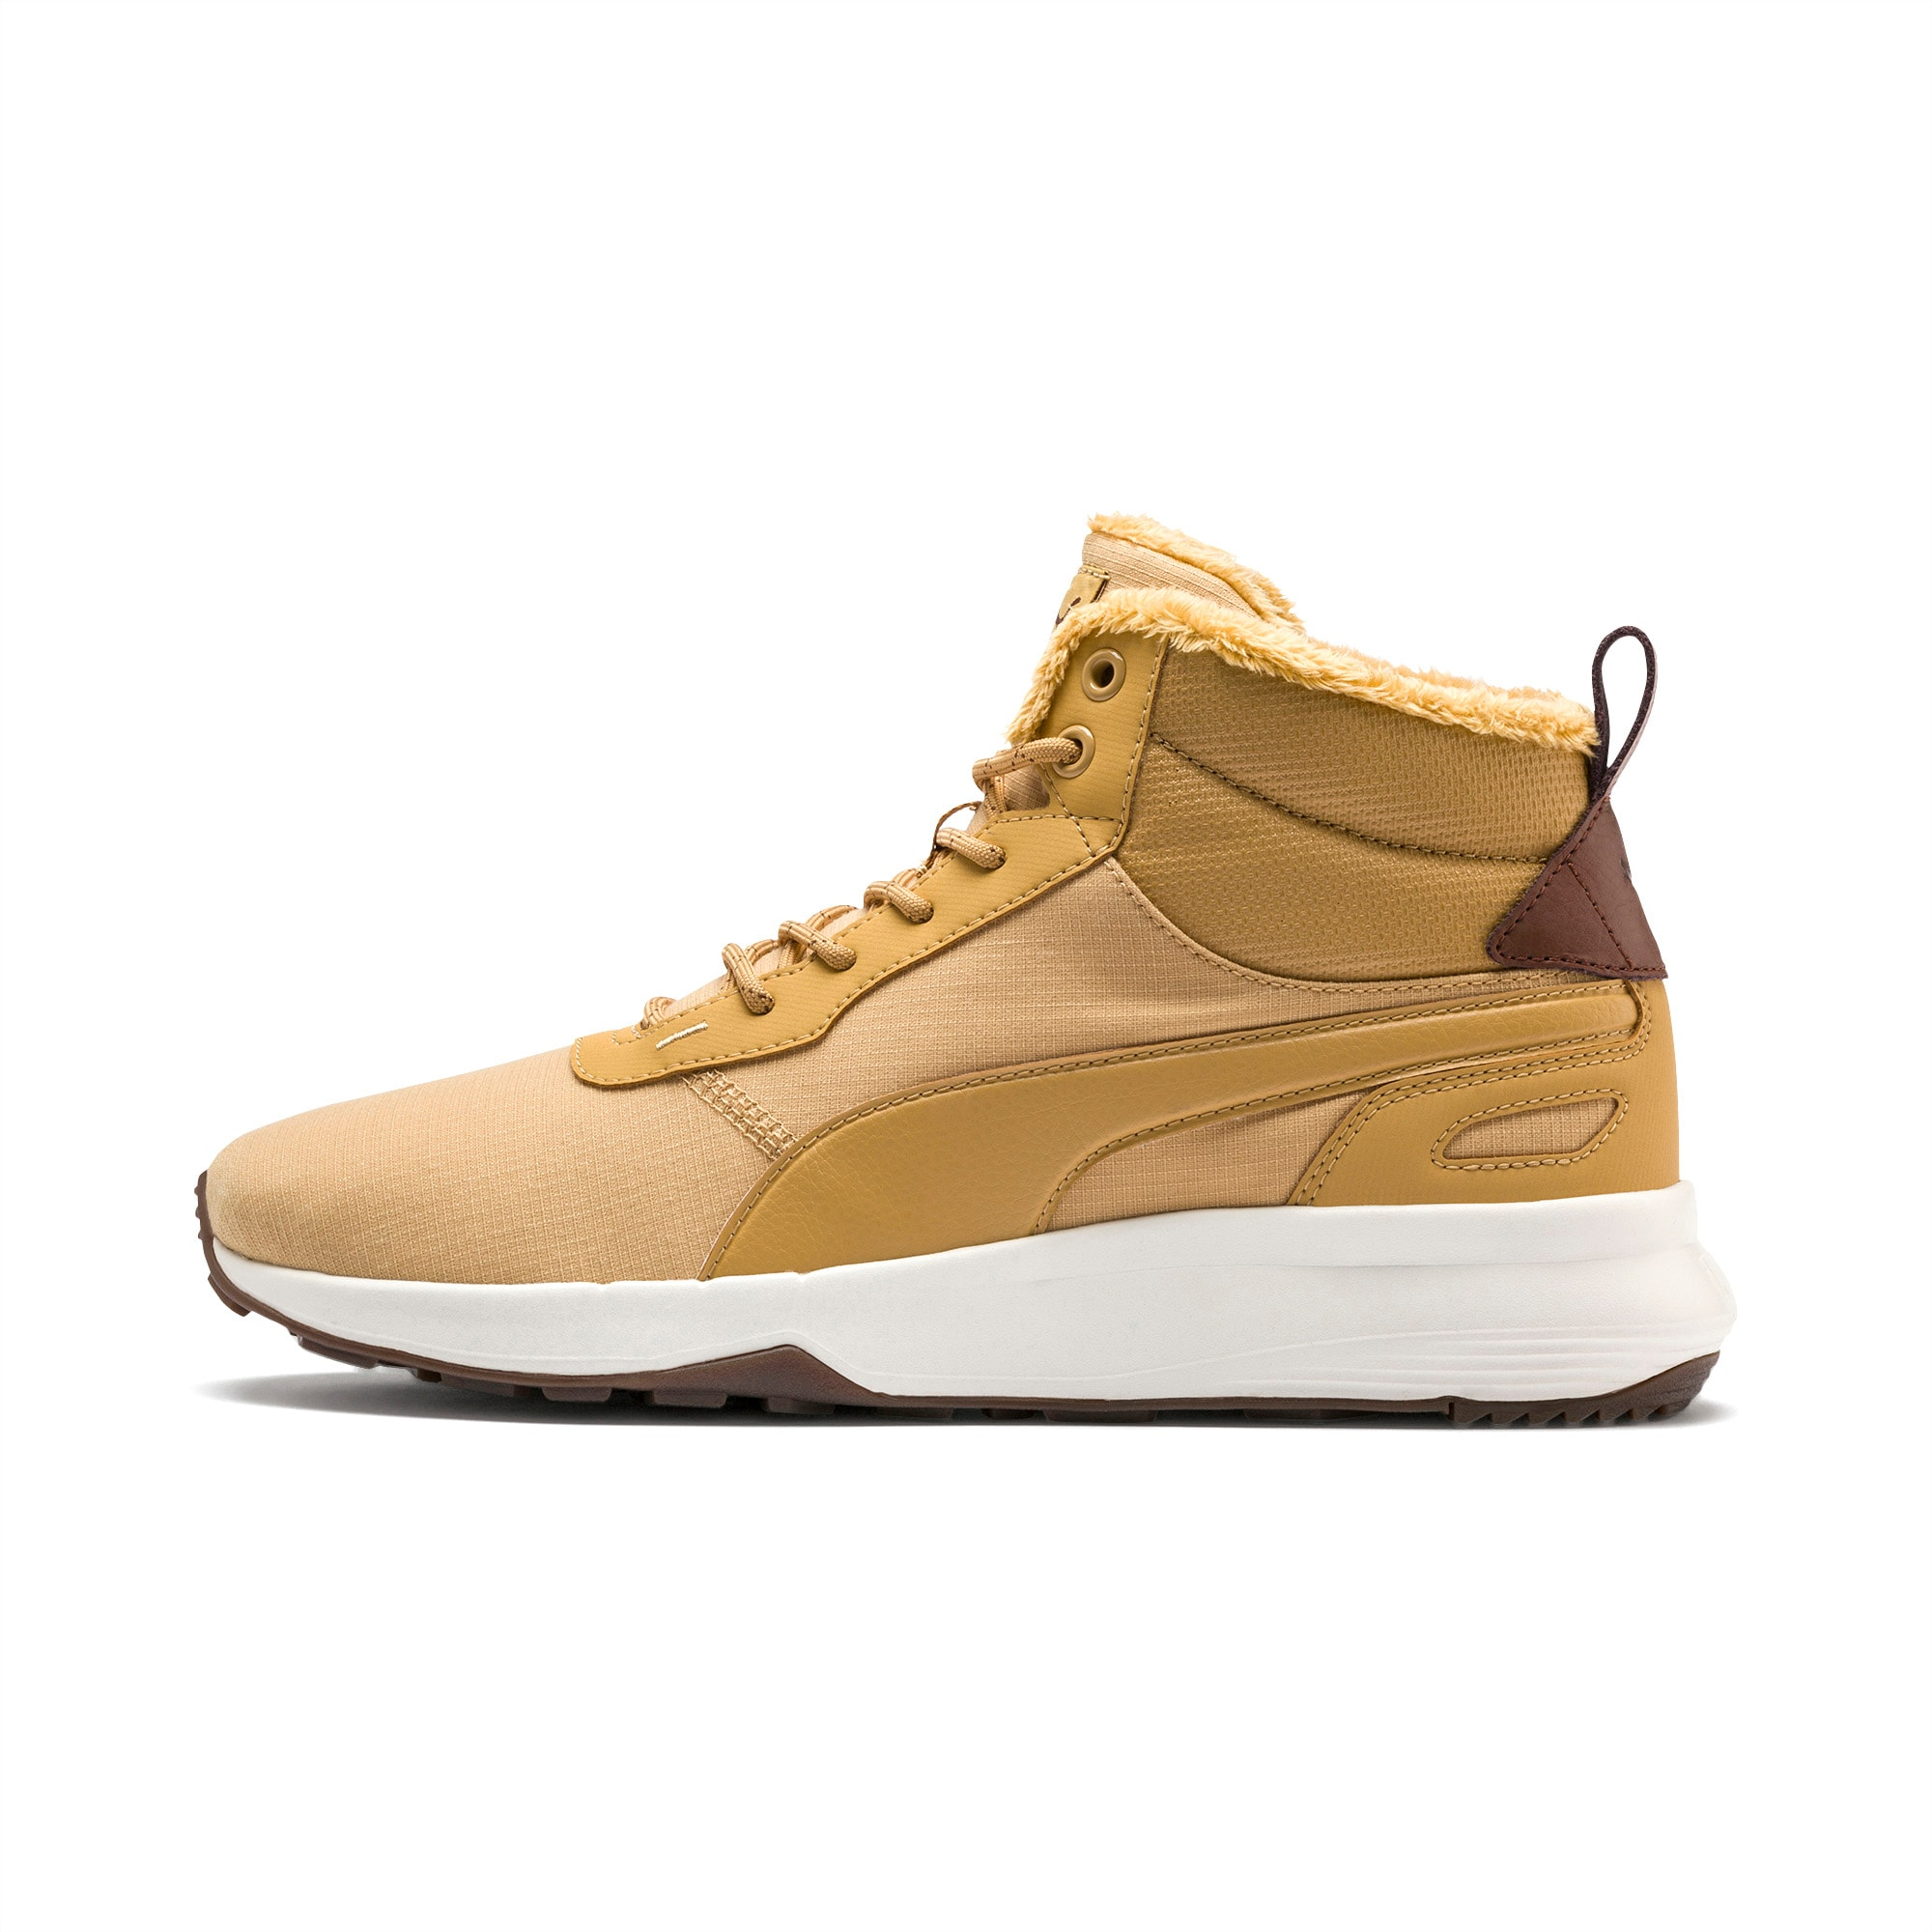 PUMA Chaussure Bottine Activate Mid-Cut, Marron, Taille 38, Chaussures